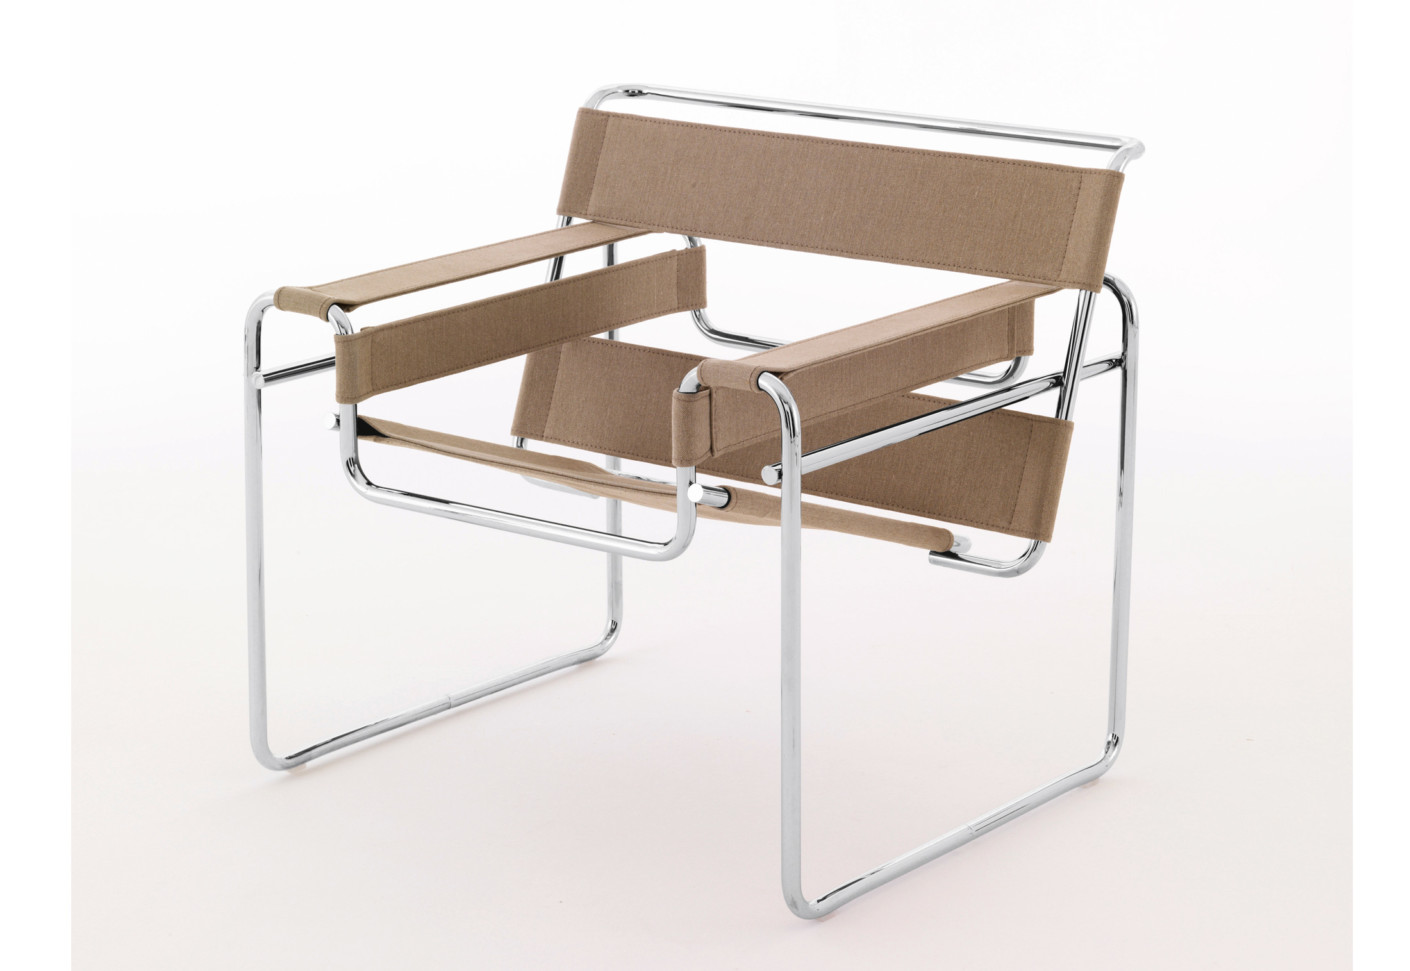 Wassily stuhl von knoll stylepark for Wassily stuhl design analyse